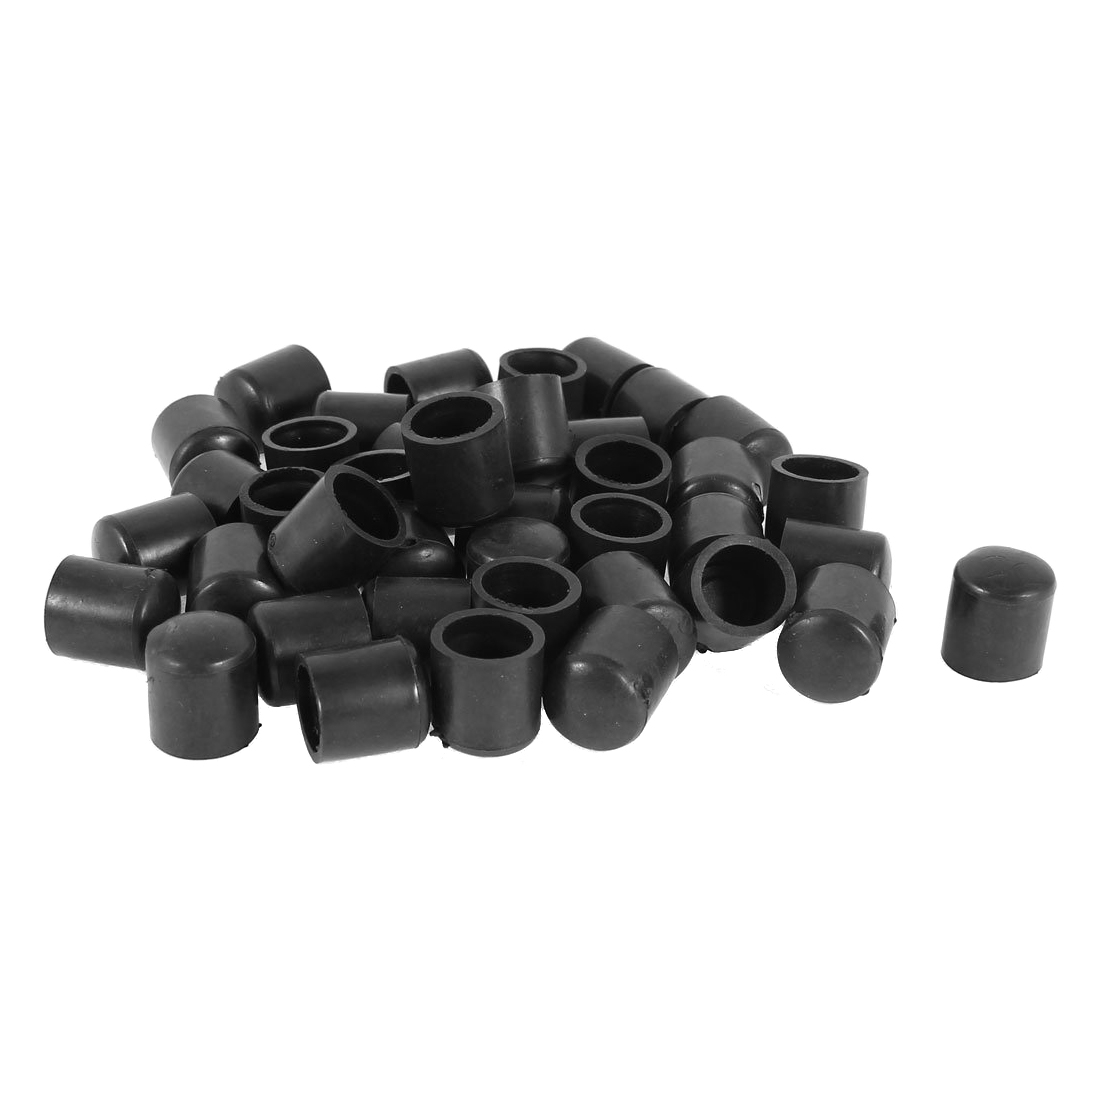 Hot Sale Rubber Caps 40-piece Black Rubber Tube Ends 10mm Round Tube Insert Furniture Leg Plug Caps Protector